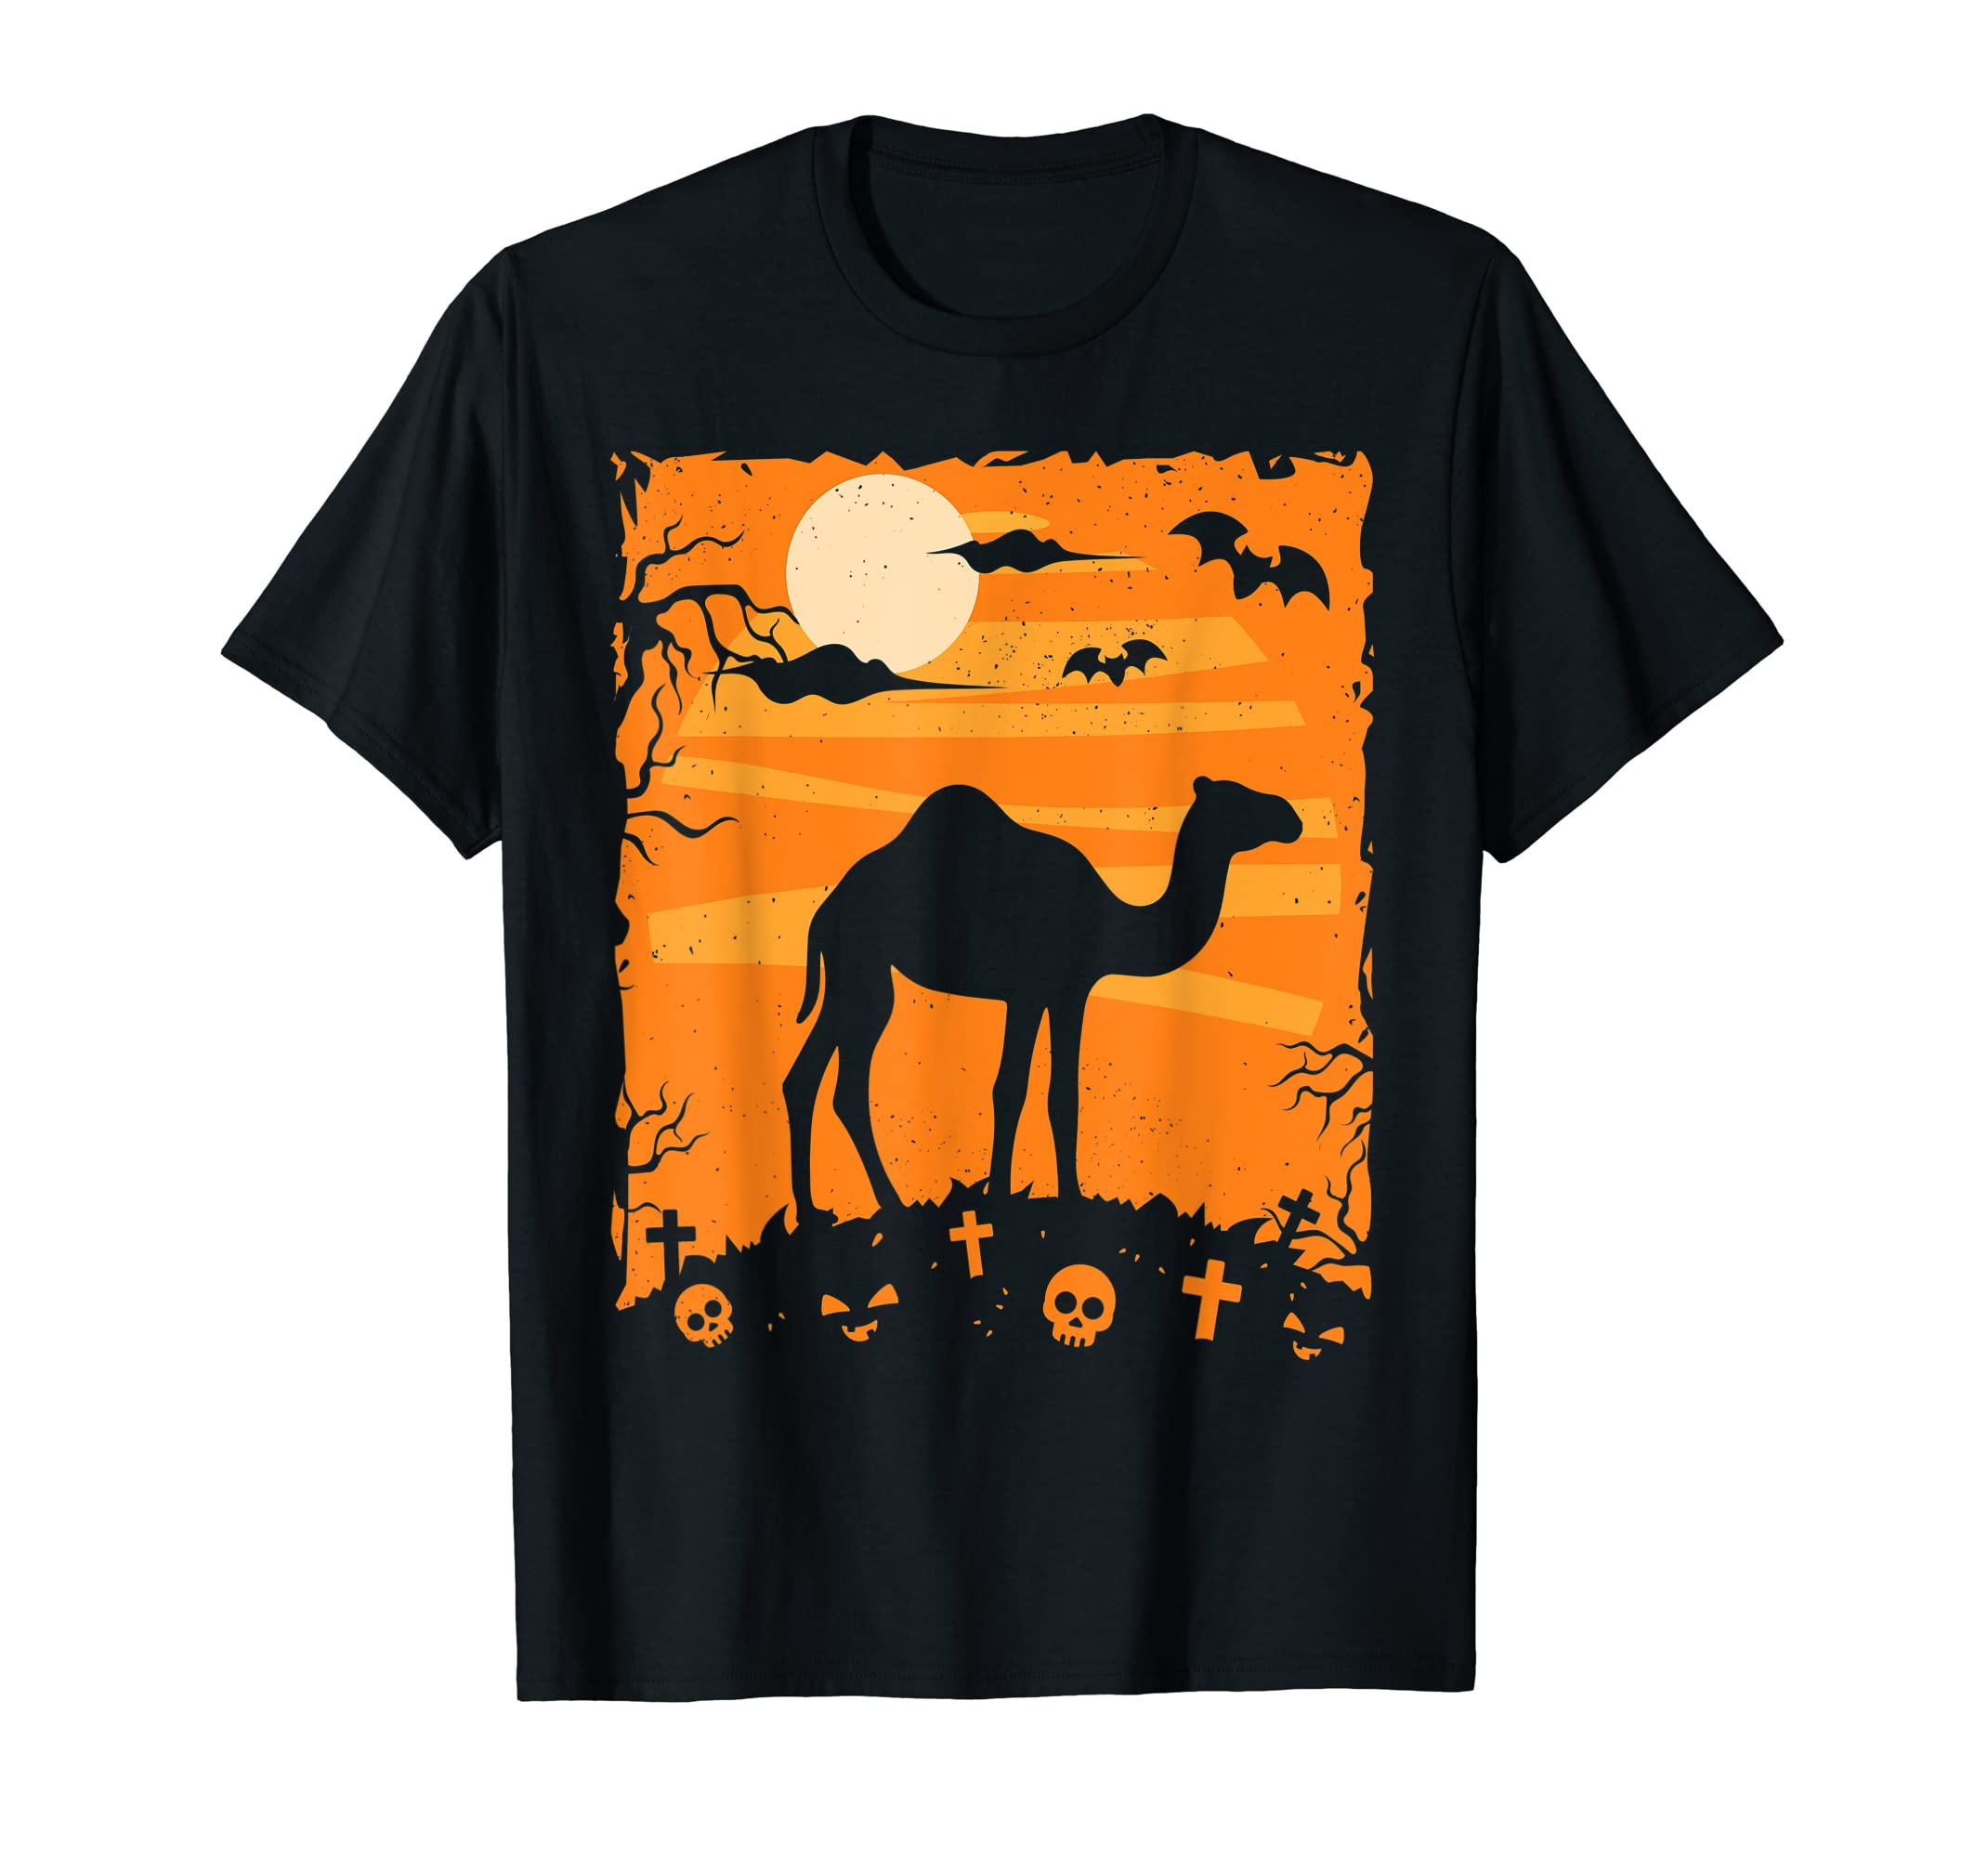 Camel Halloween Costume Animal Funny Pumpkin Outfit Gift T-Shirt-Men's T-Shirt-Black